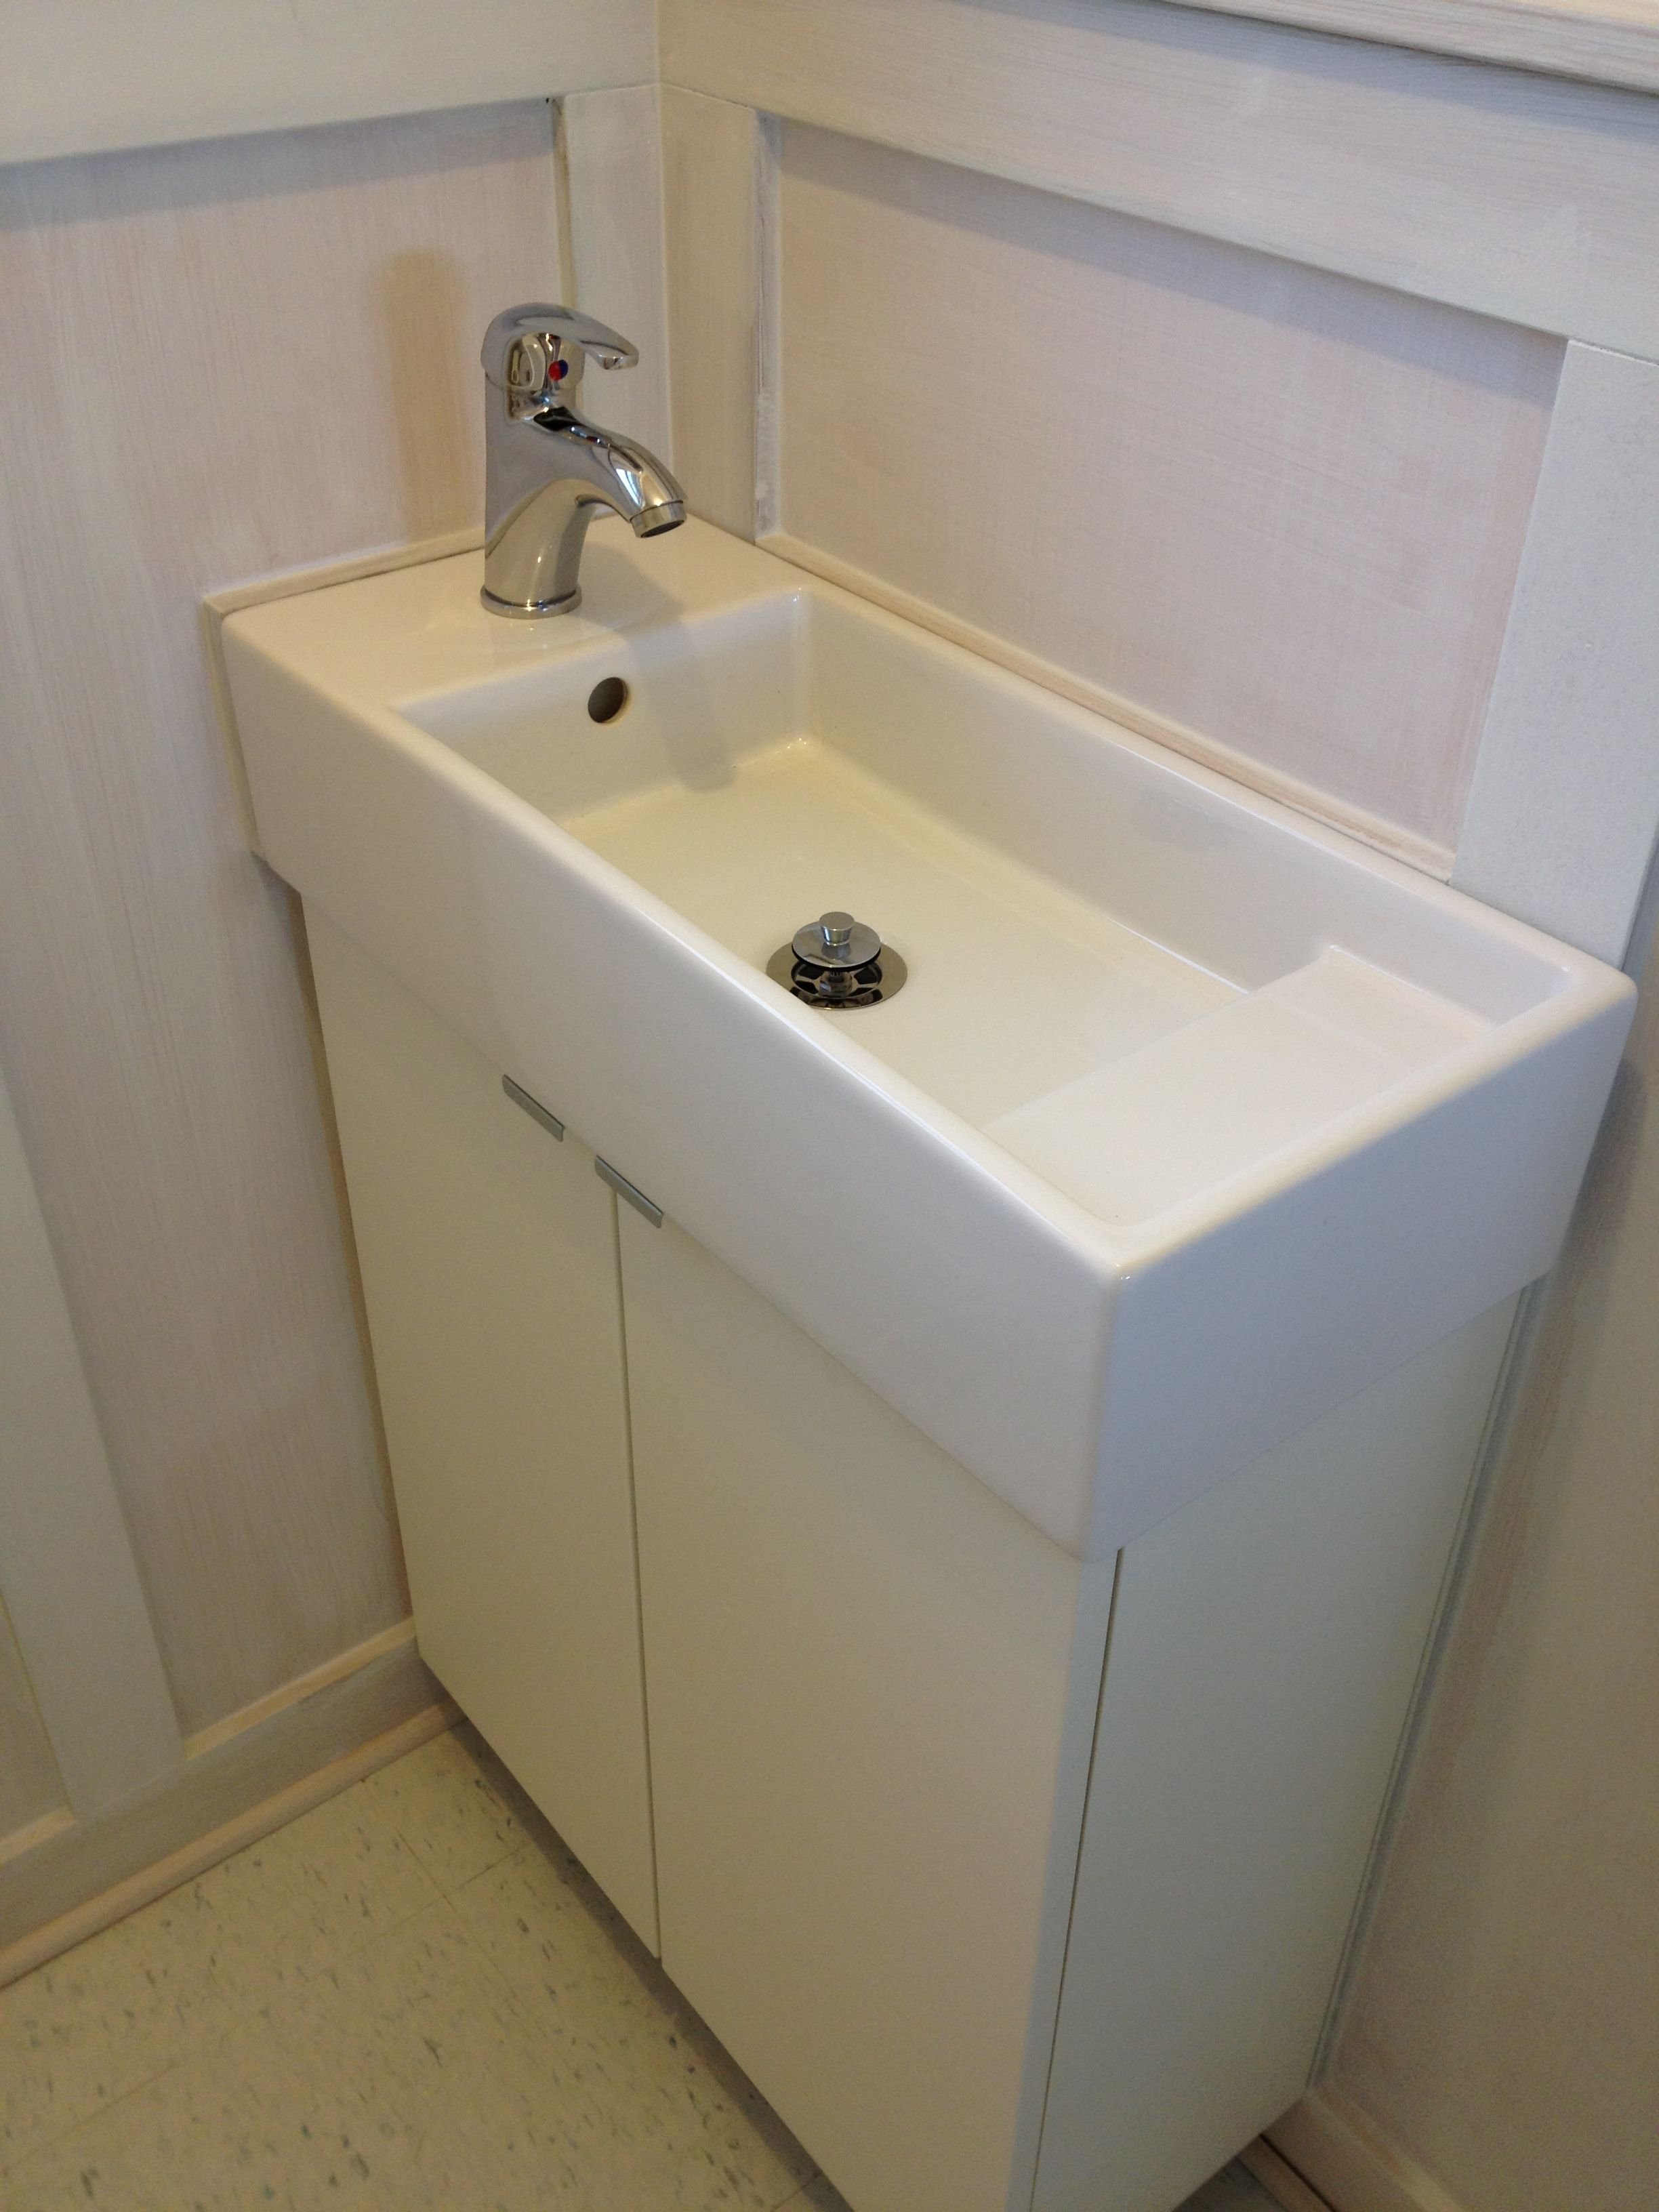 Pair Ikea Narrow Bath LillÅngen Cabinet With The Sink